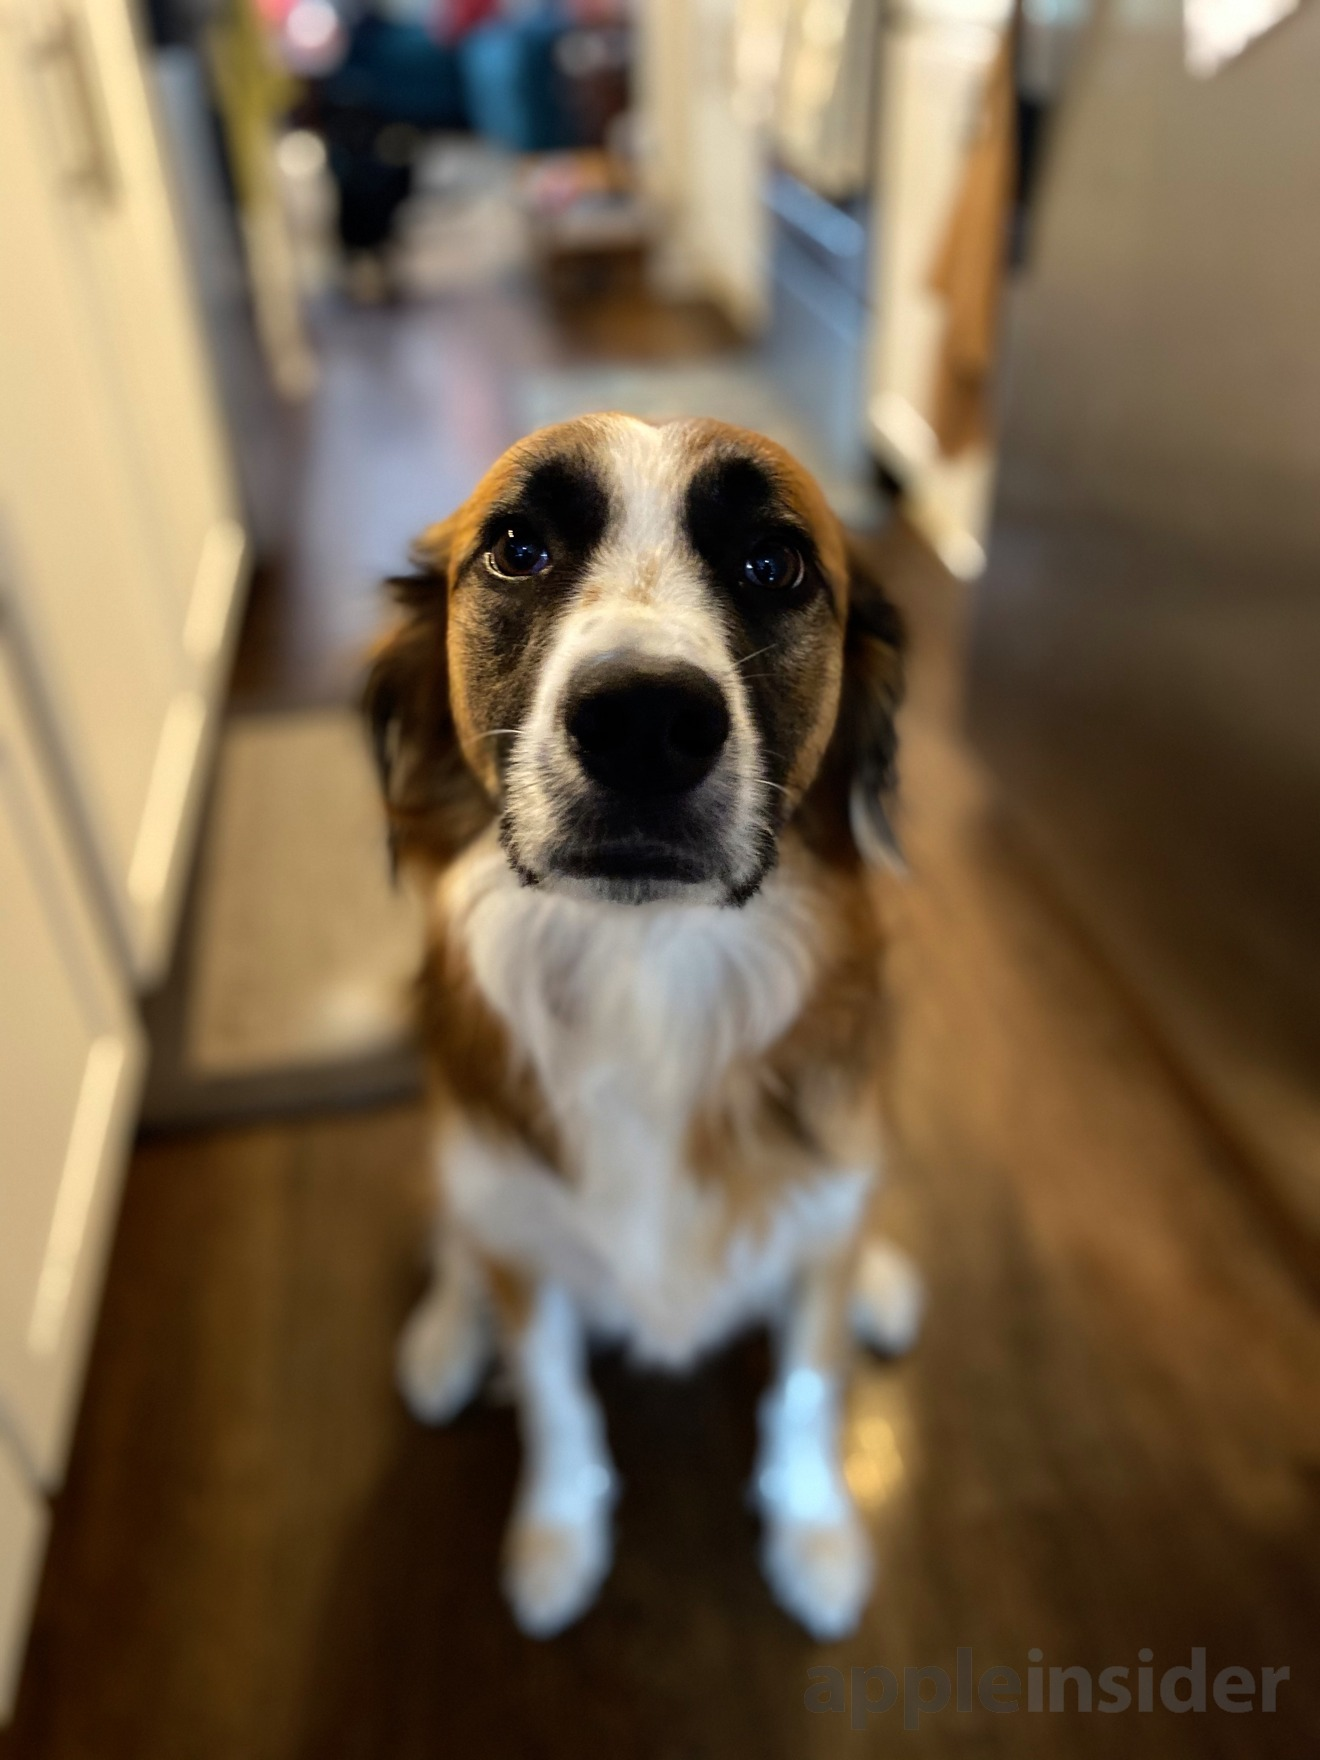 Mosby the puppy, shot with the iPhone 11's new Portrait mode